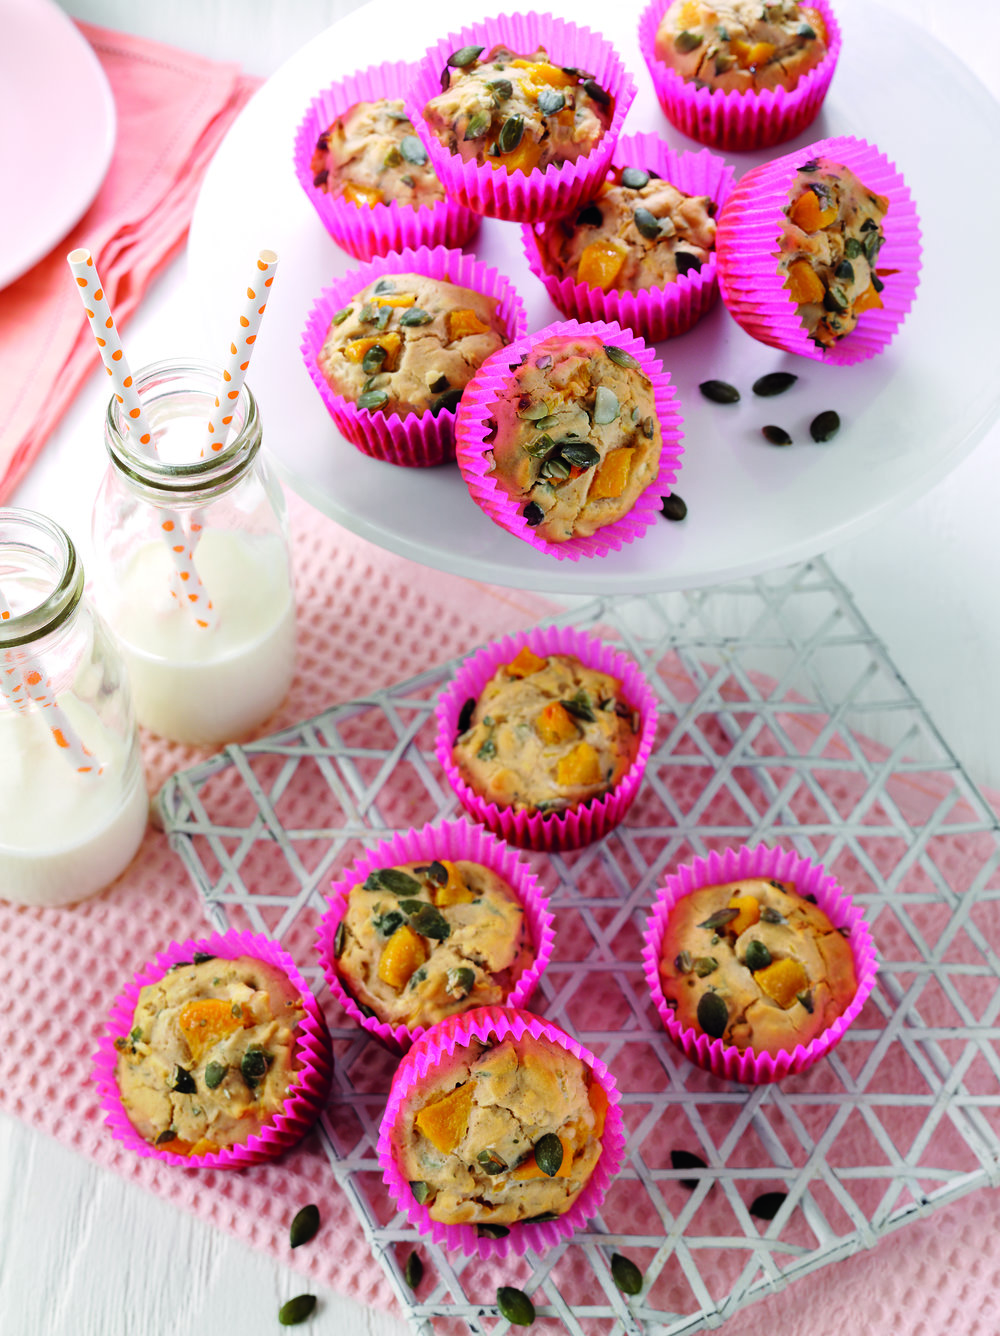 Sugar and Gluten Free Peach Muffins - no pack.jpg